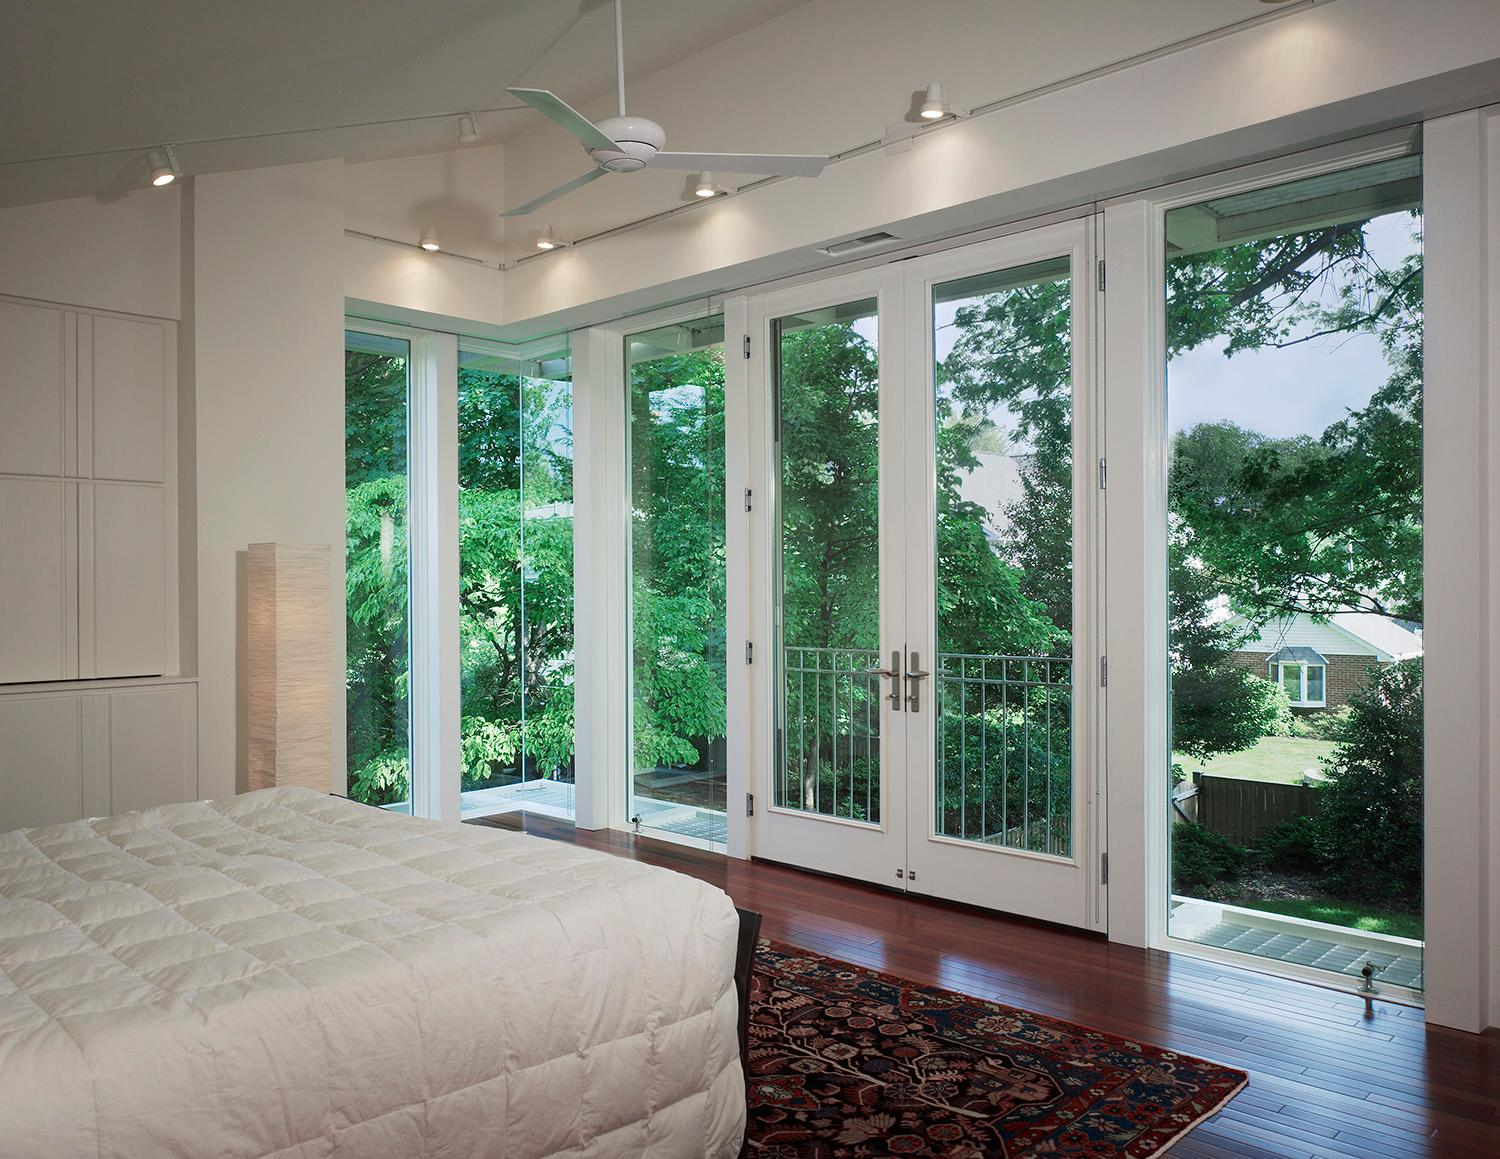 Situated above the new great room, the view from the new master bedroom with sloped ceilings and nine-foot high doors.(Hoachlander Davis Photography)